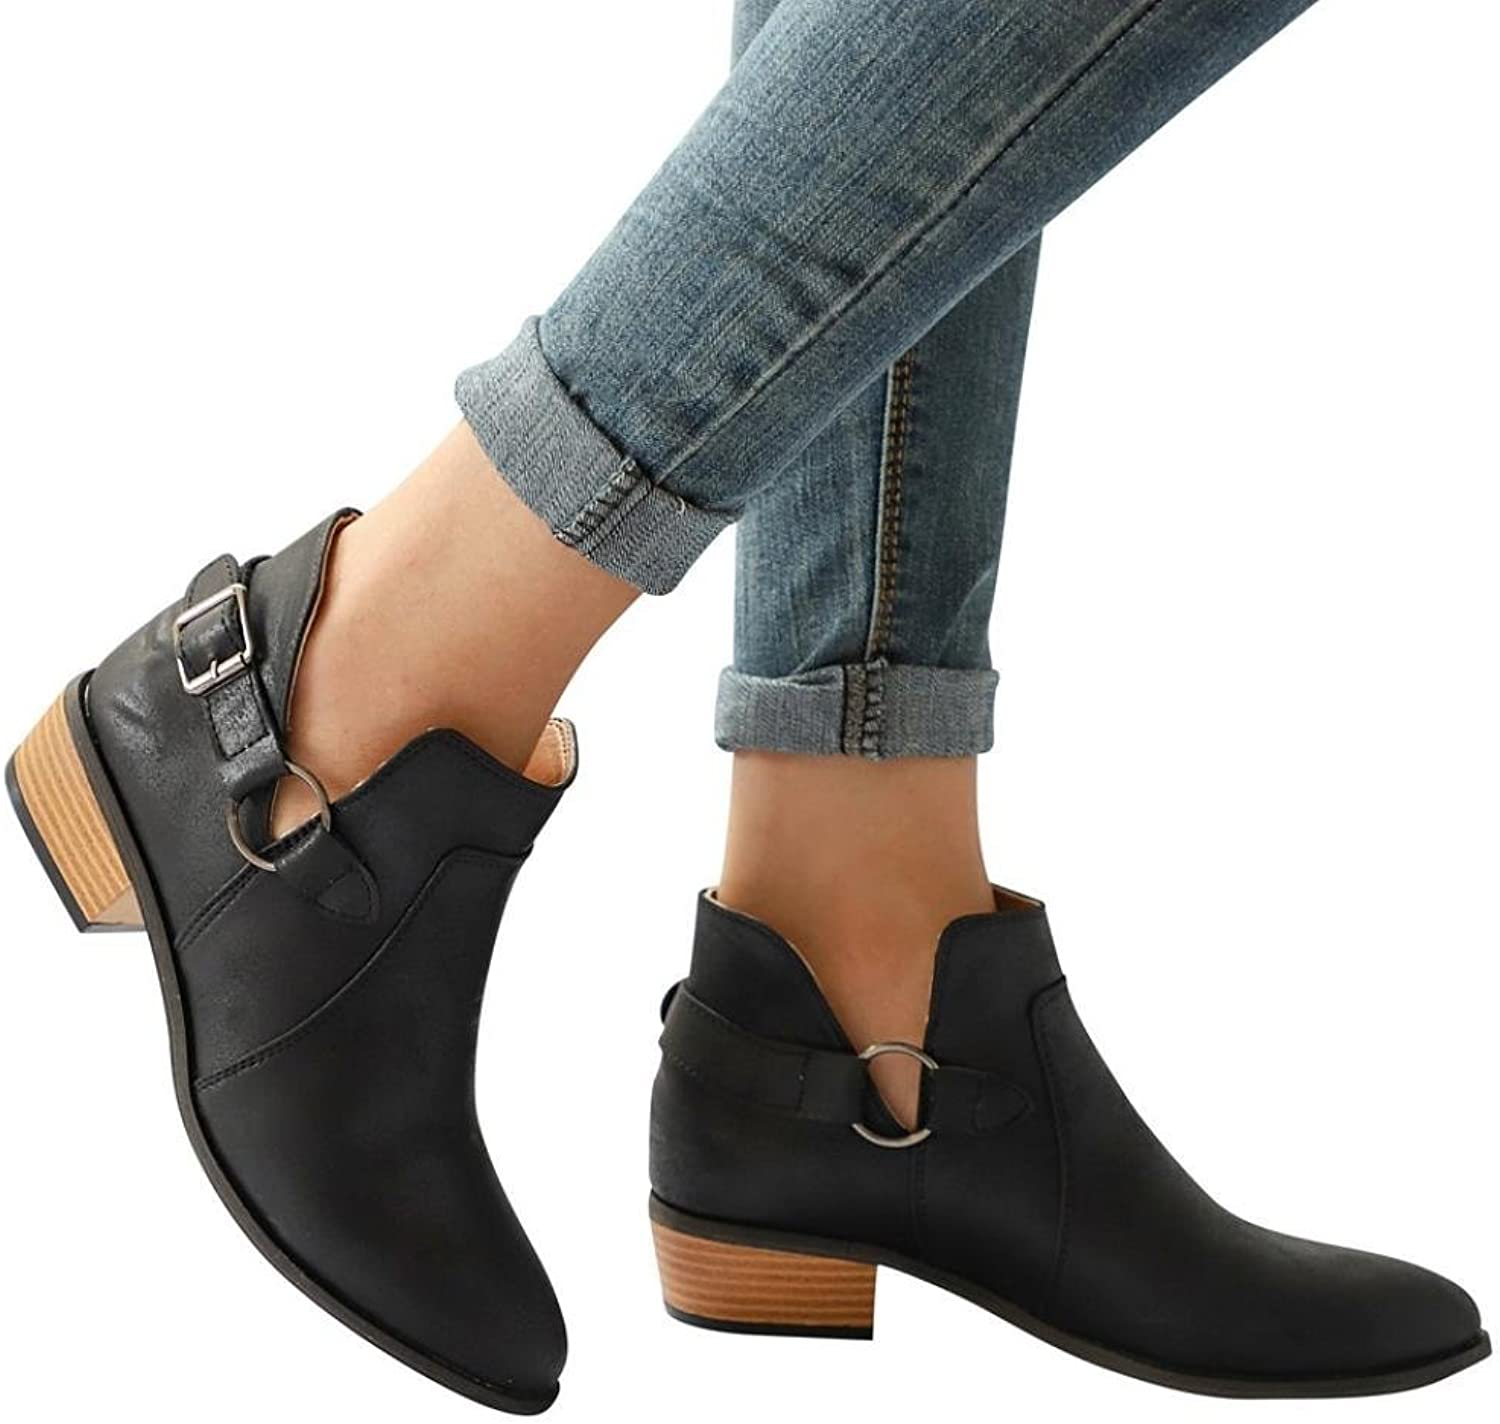 Buckled Strap Booties Women Boots Pointed Toe Boots Low Block Heel Ankle Boots (US 5.5, Black)